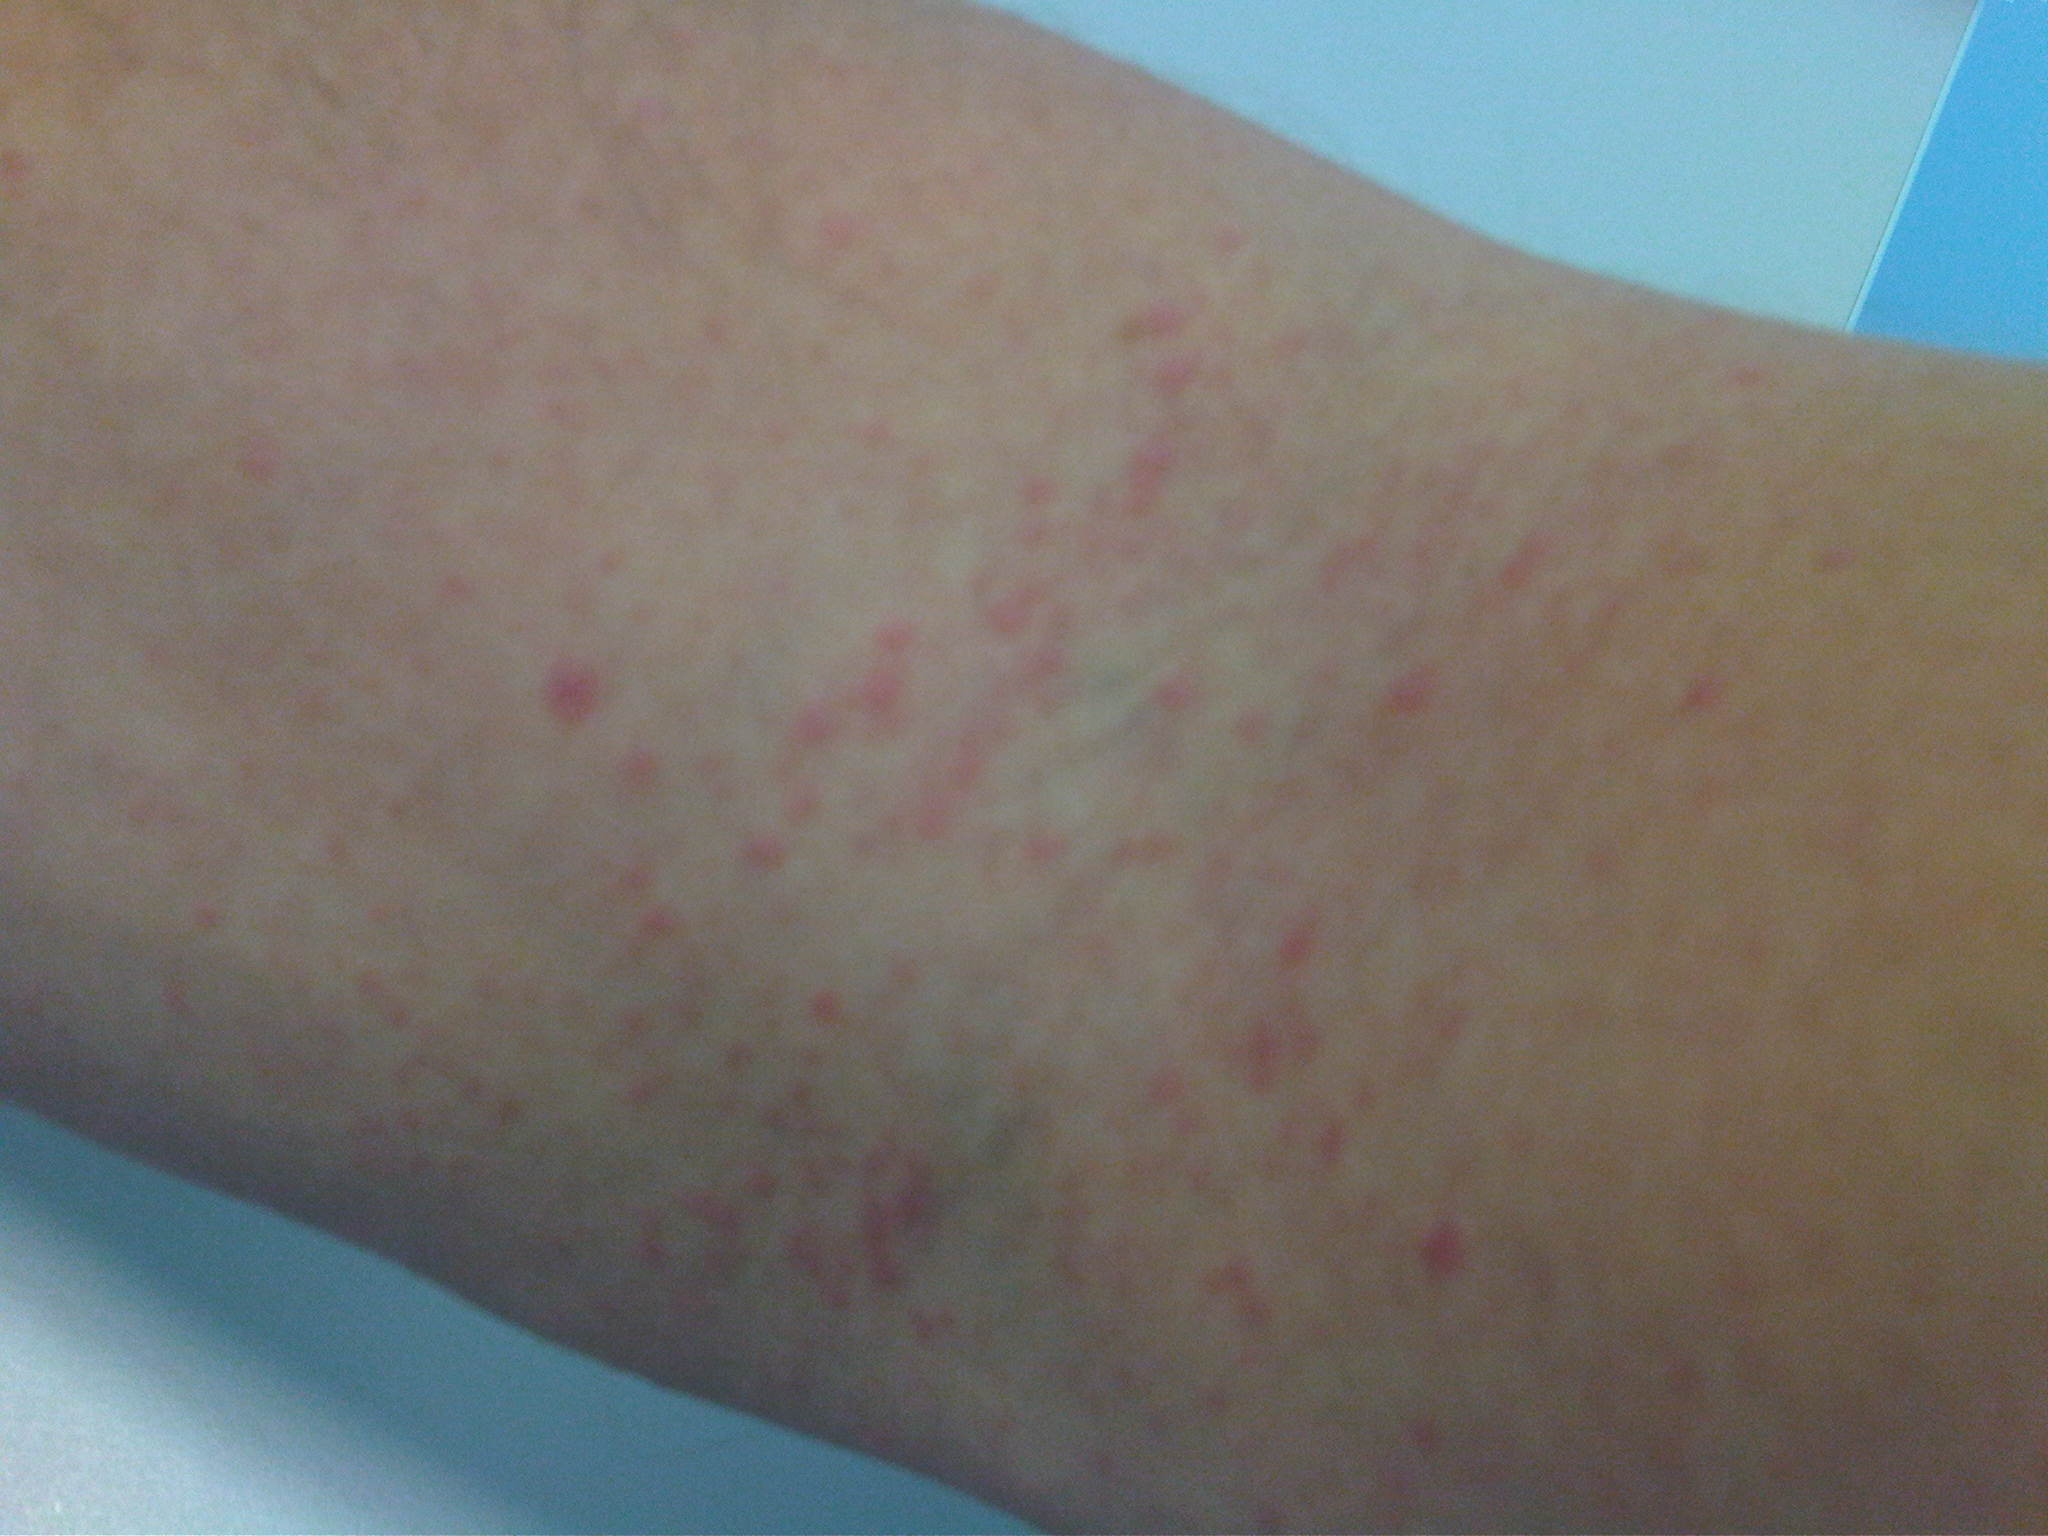 itchy rash on arms dog breeds picture